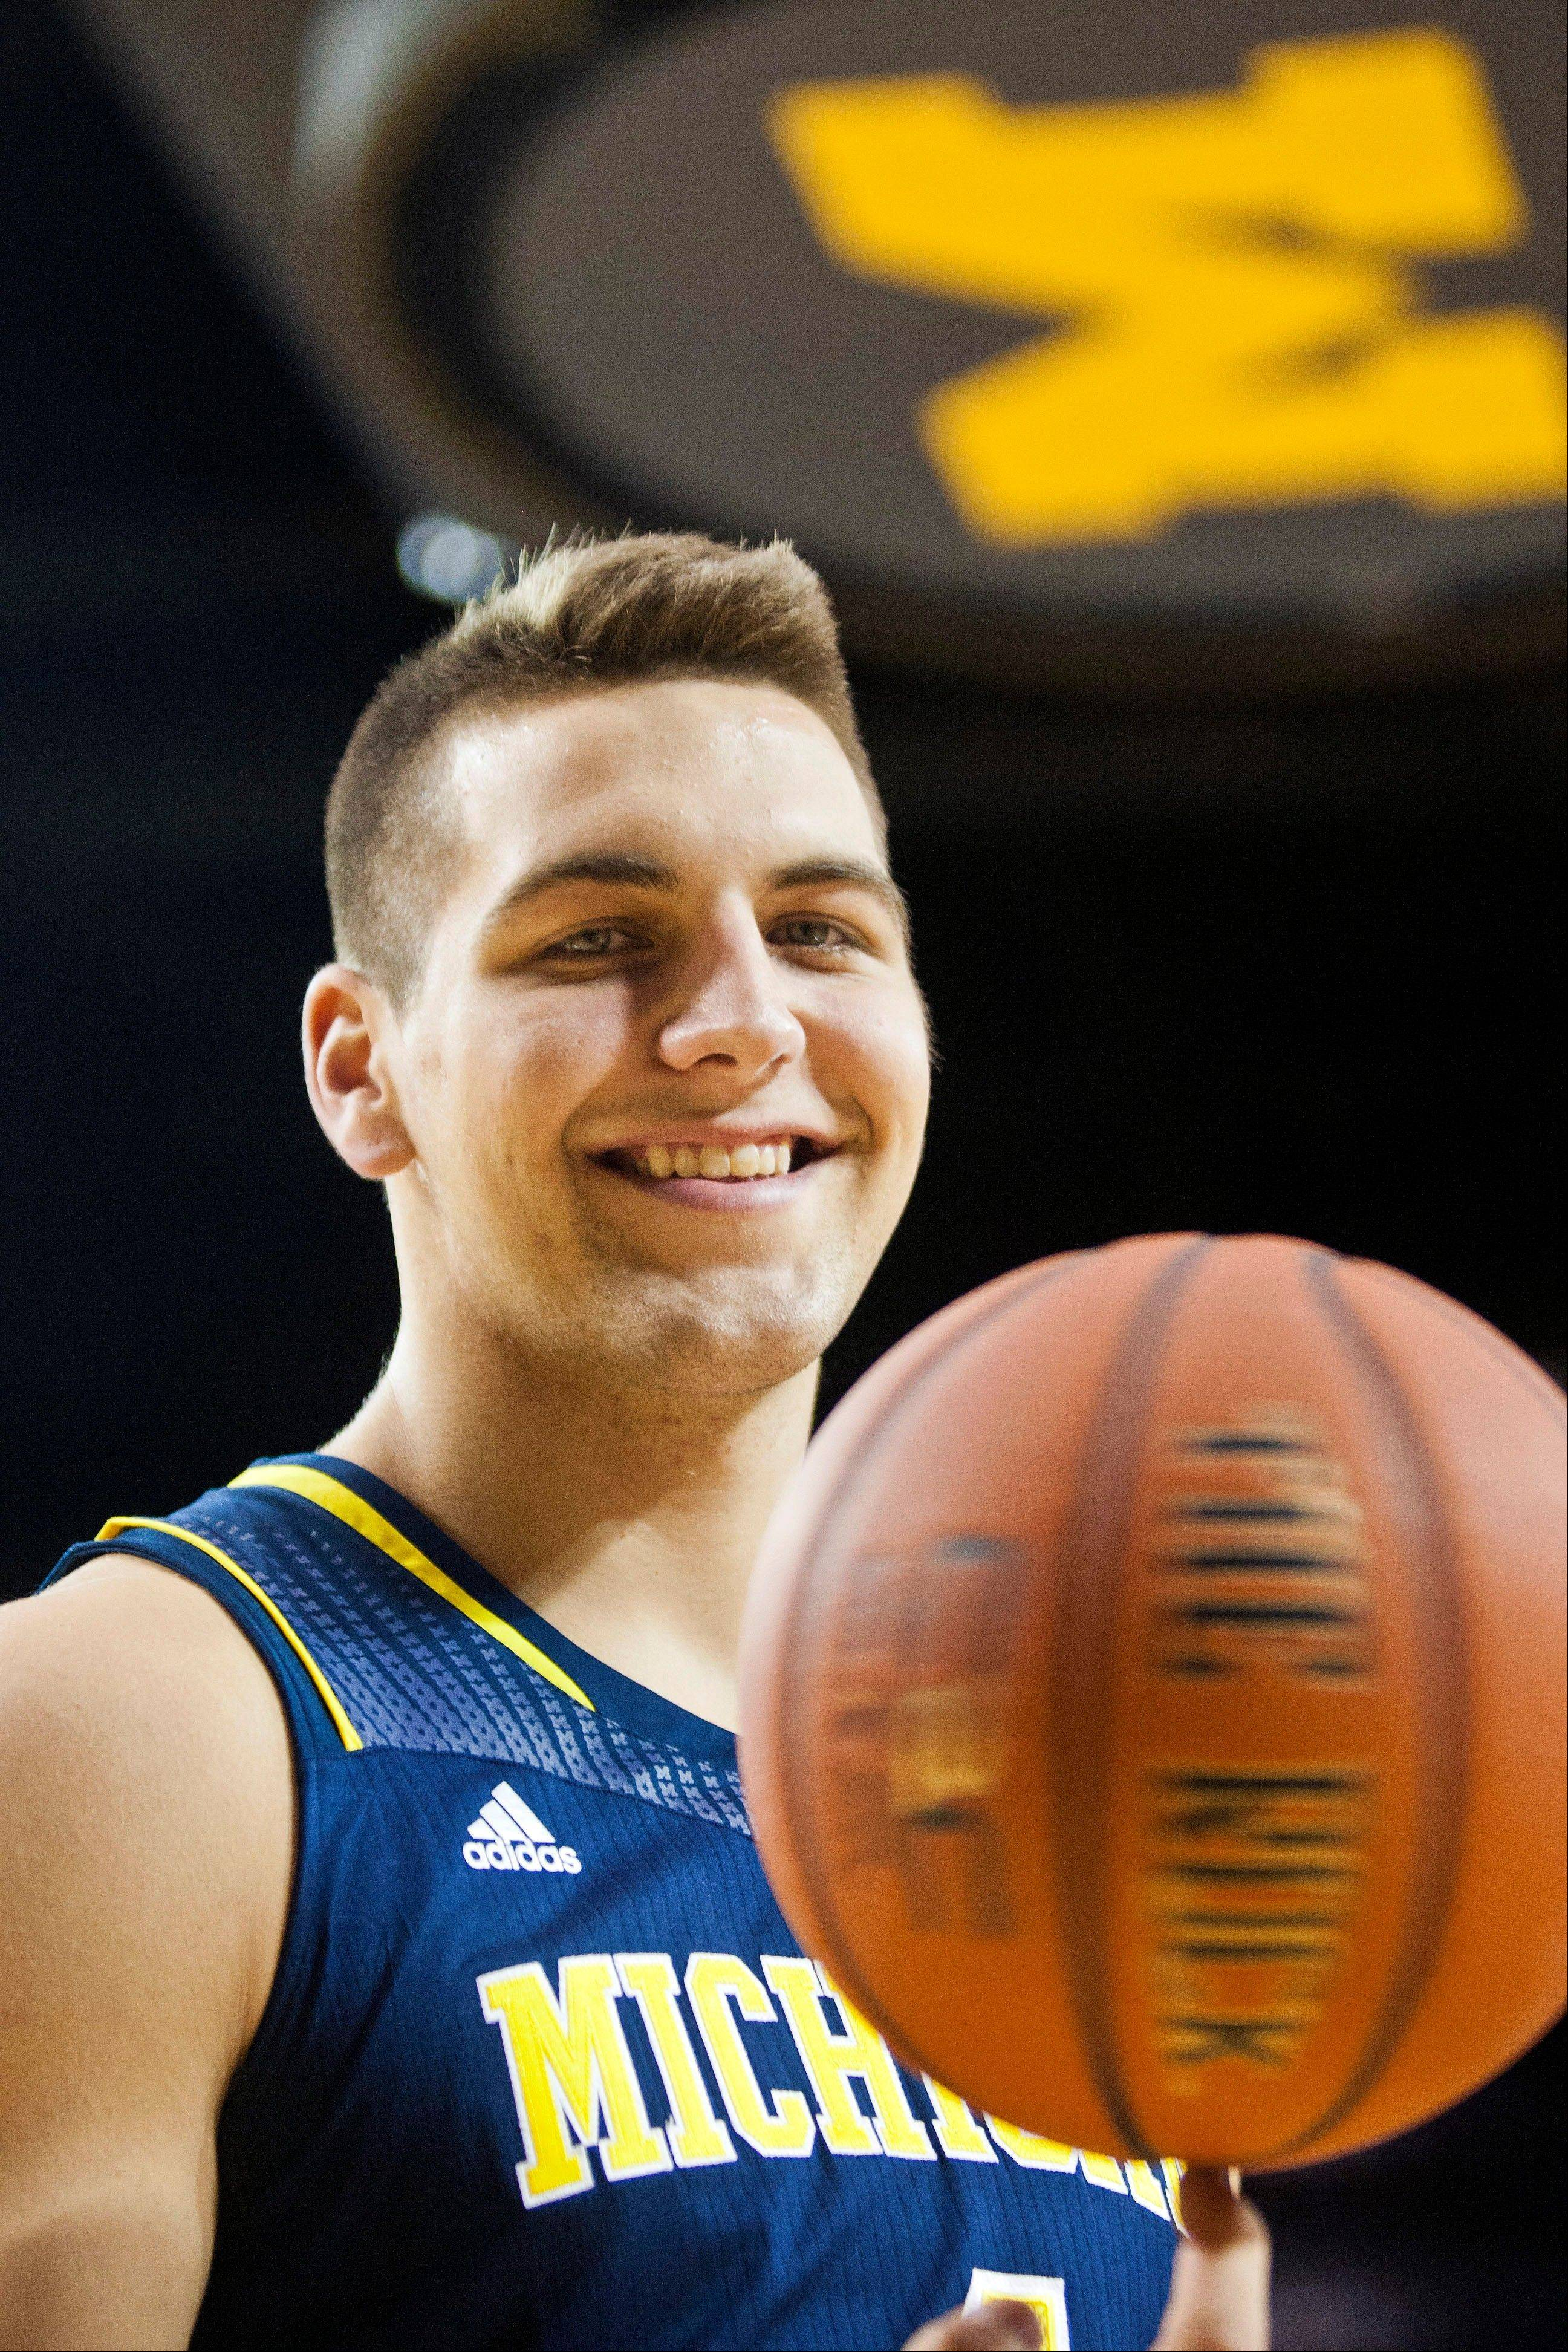 Michigan sophomore Mitch McGary poses for a portrait during the team's media day Thursday at the Crisler Center in Ann Arbor, Mich.